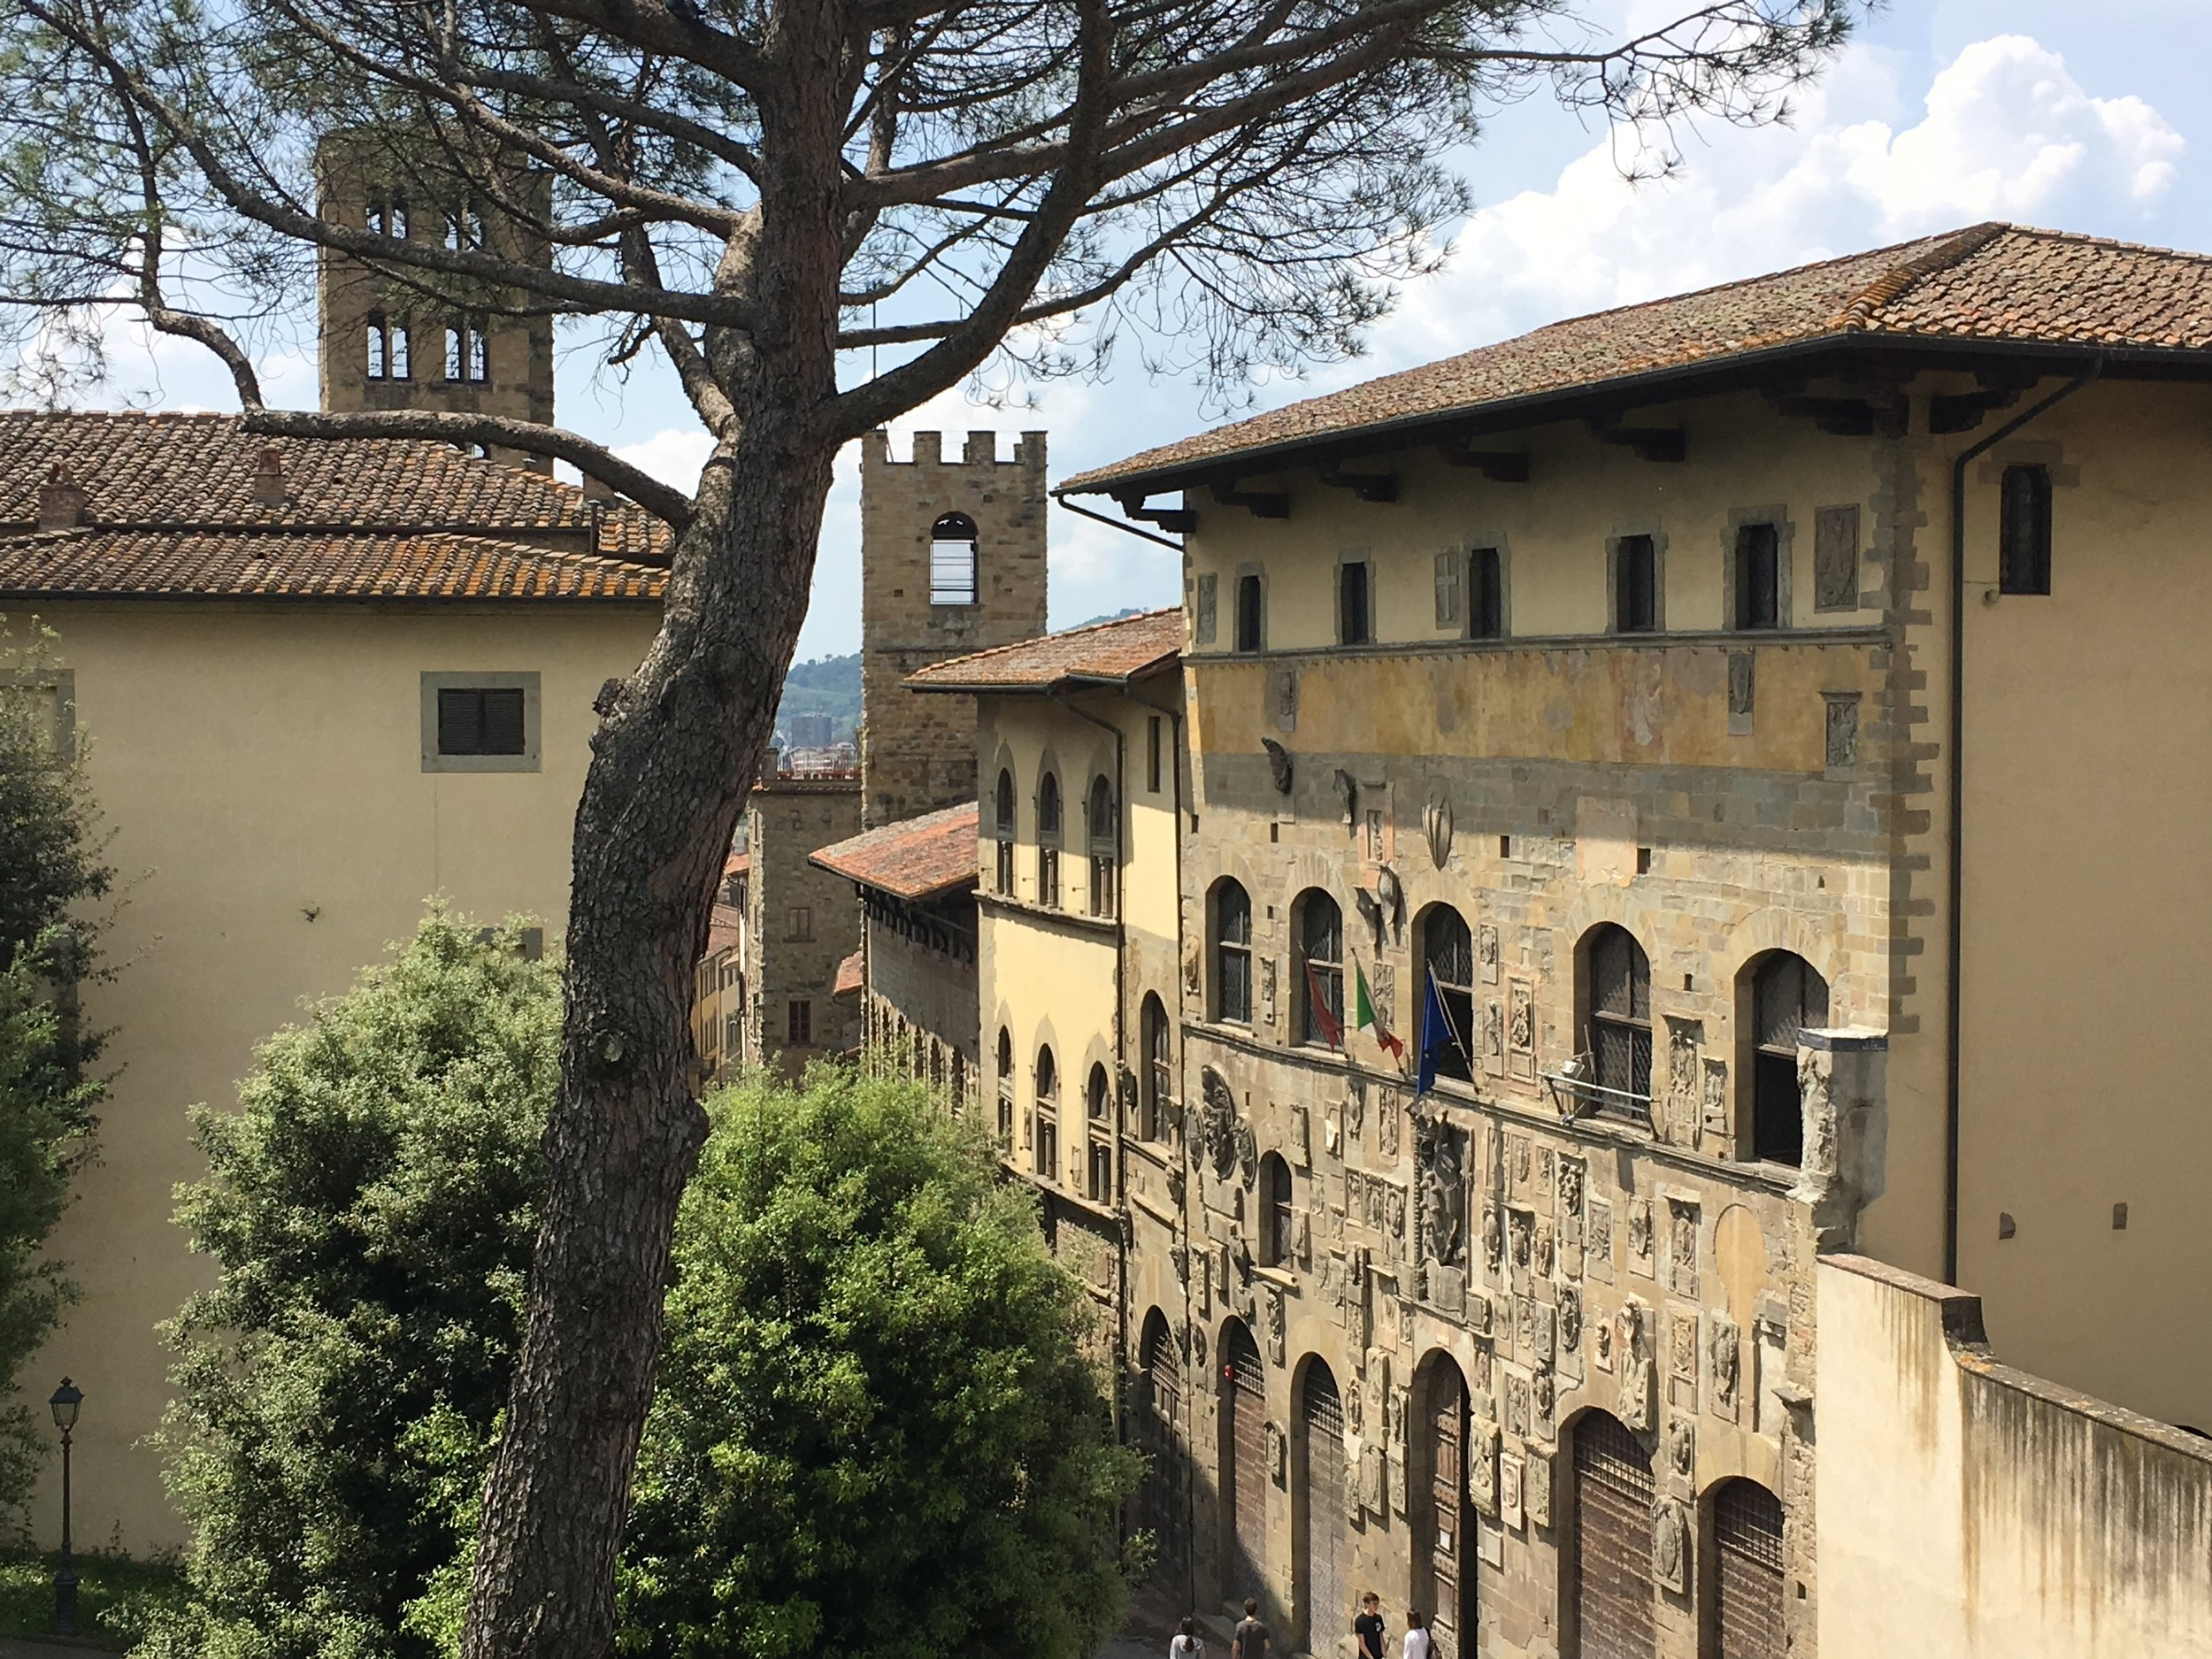 The Tuscan town of Arezzo